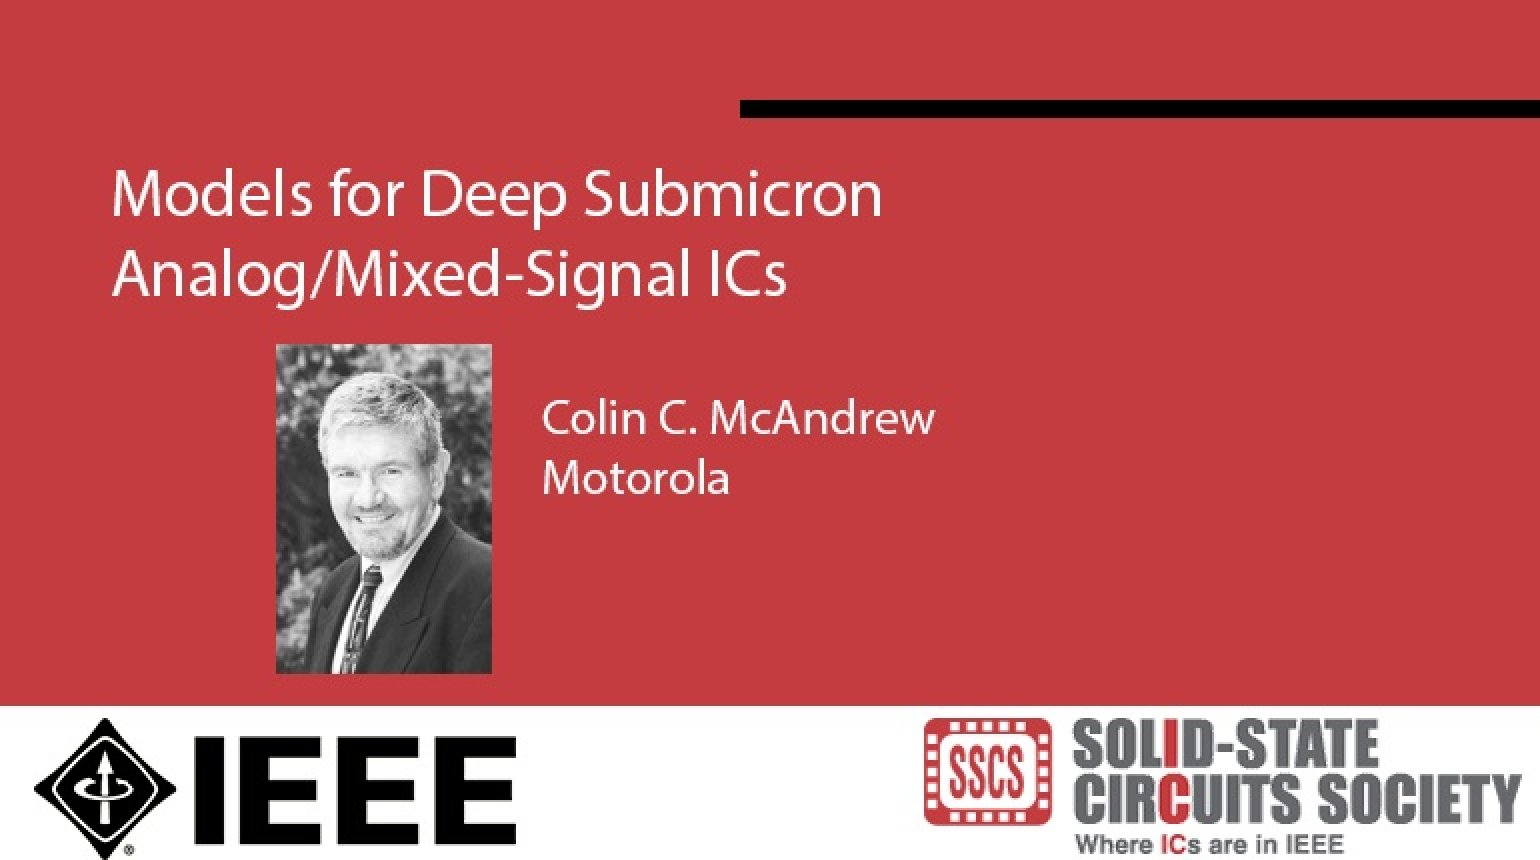 Models for Deep Submicron Analog/Mixed-Signal ICs Video